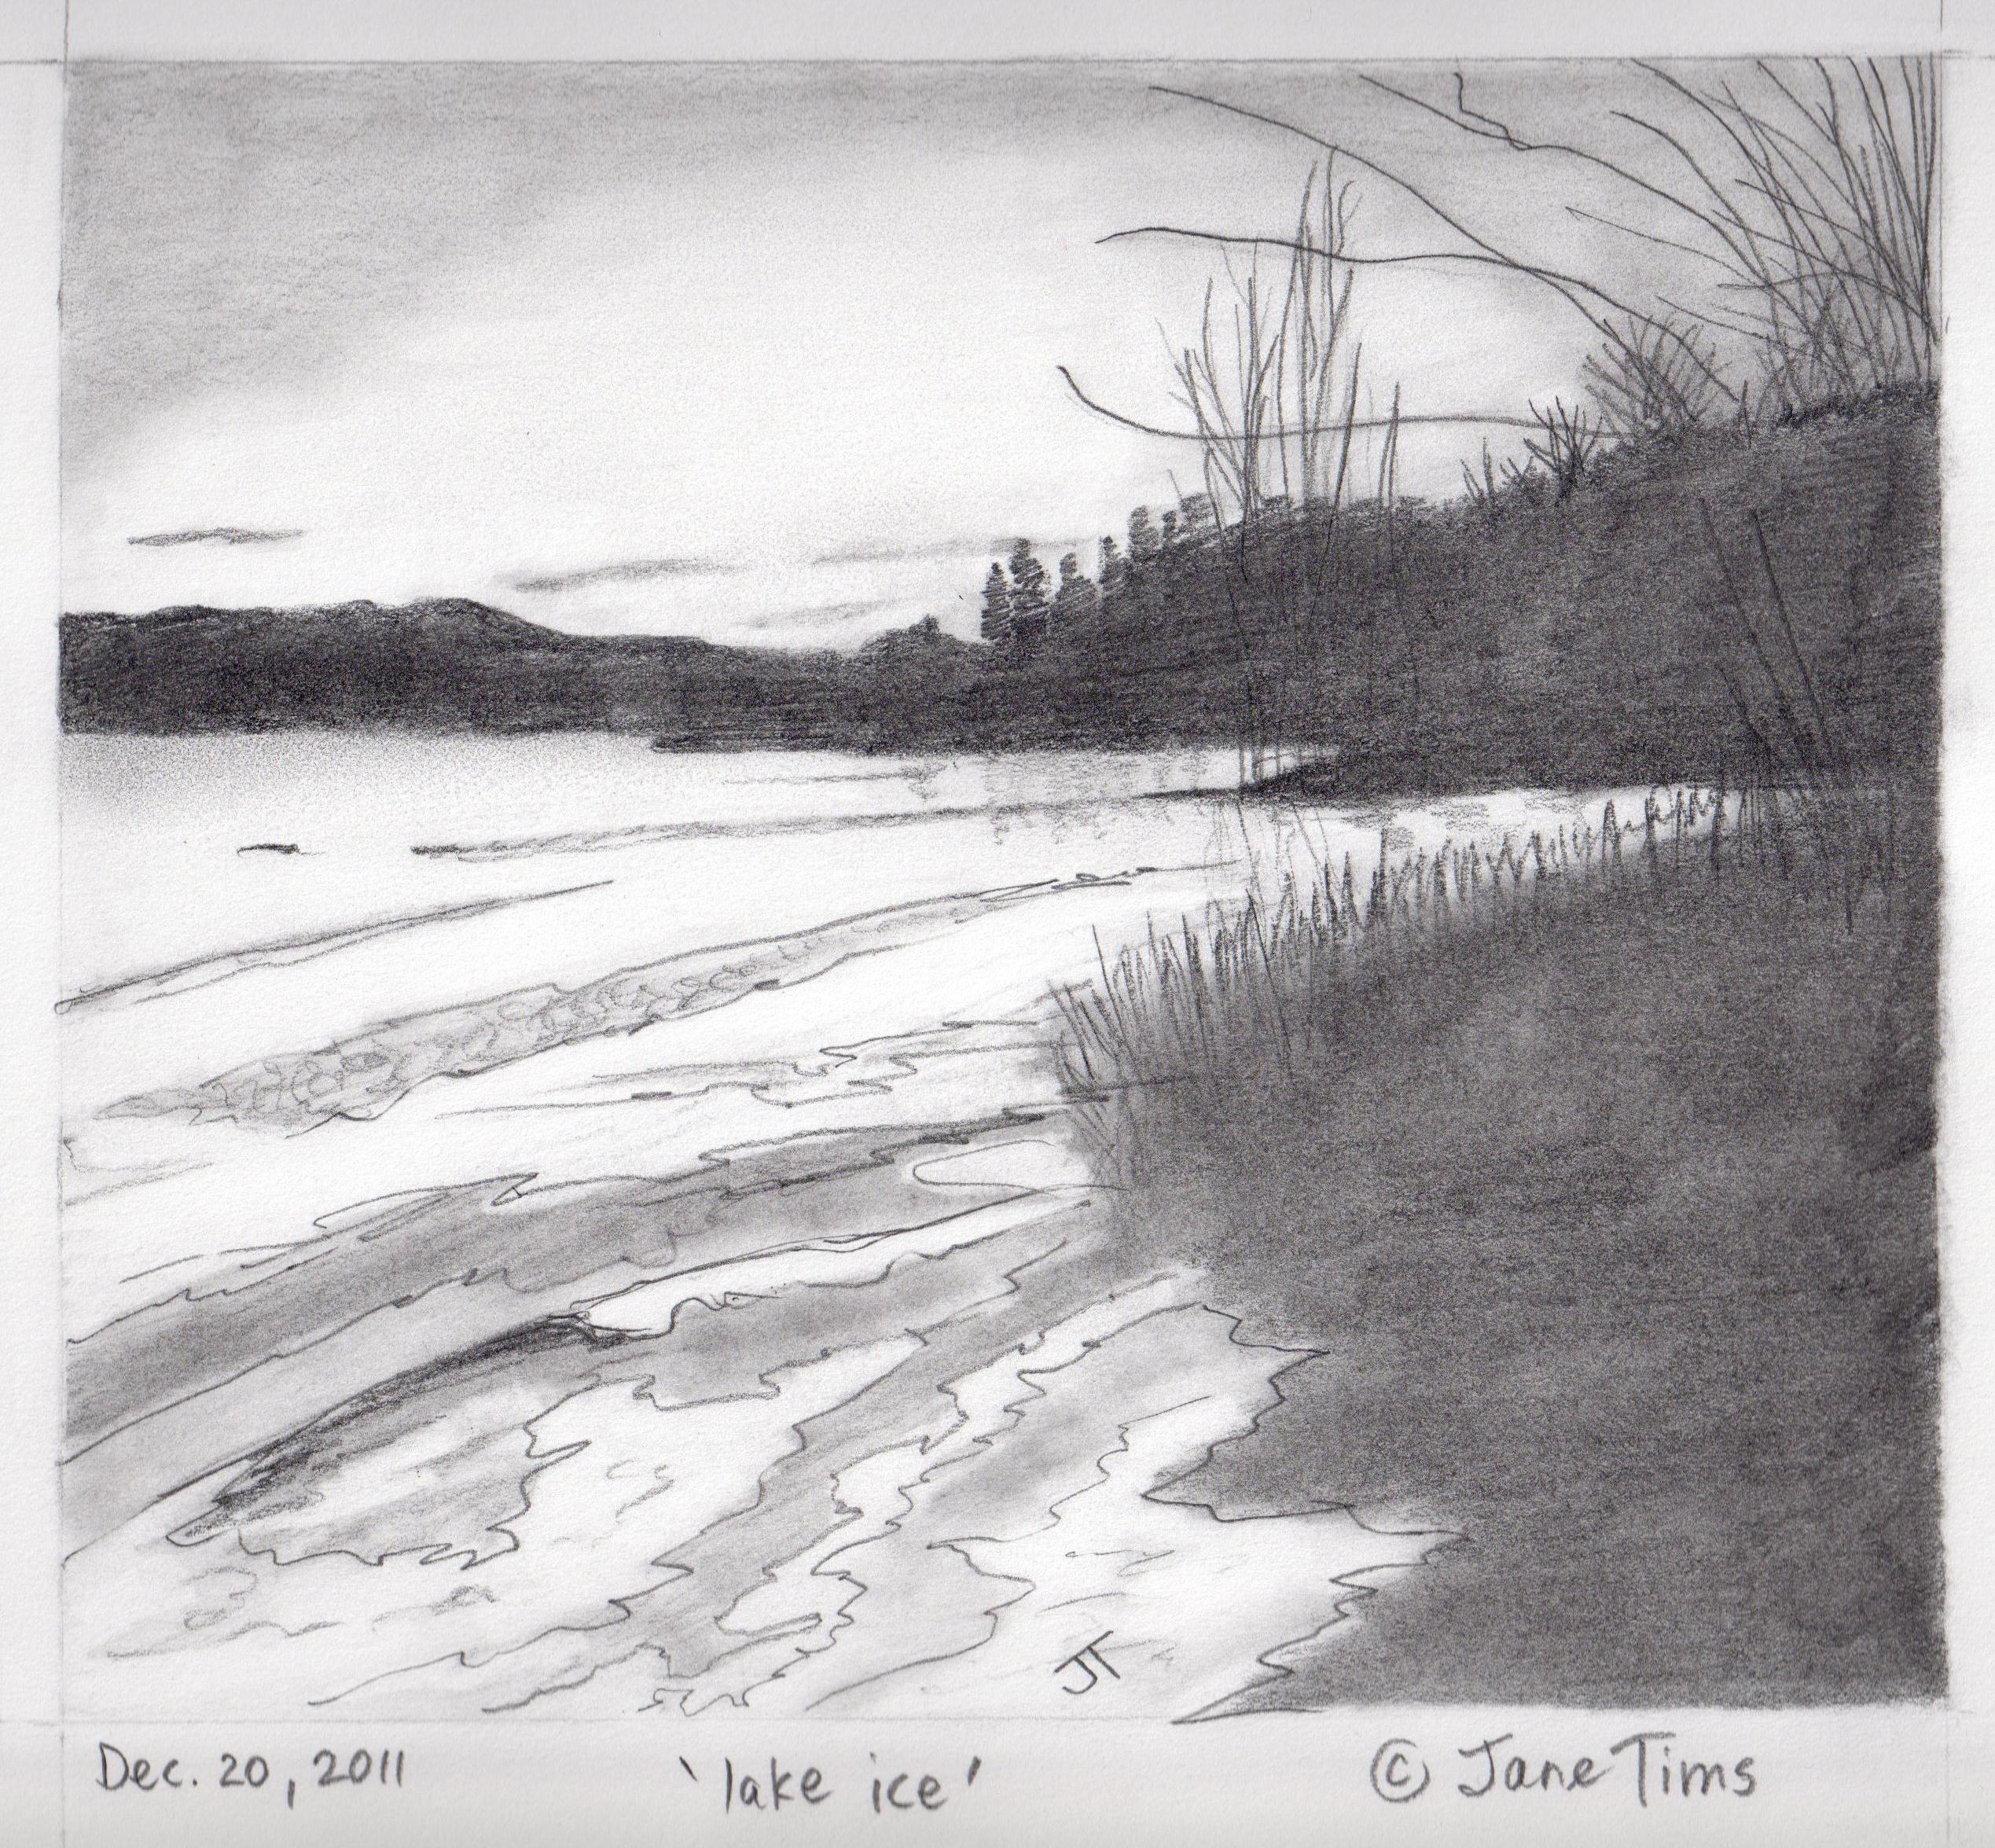 Beautiful Nature Pencil Drawings: Gallery Of Pencil Drawings Of Landscape